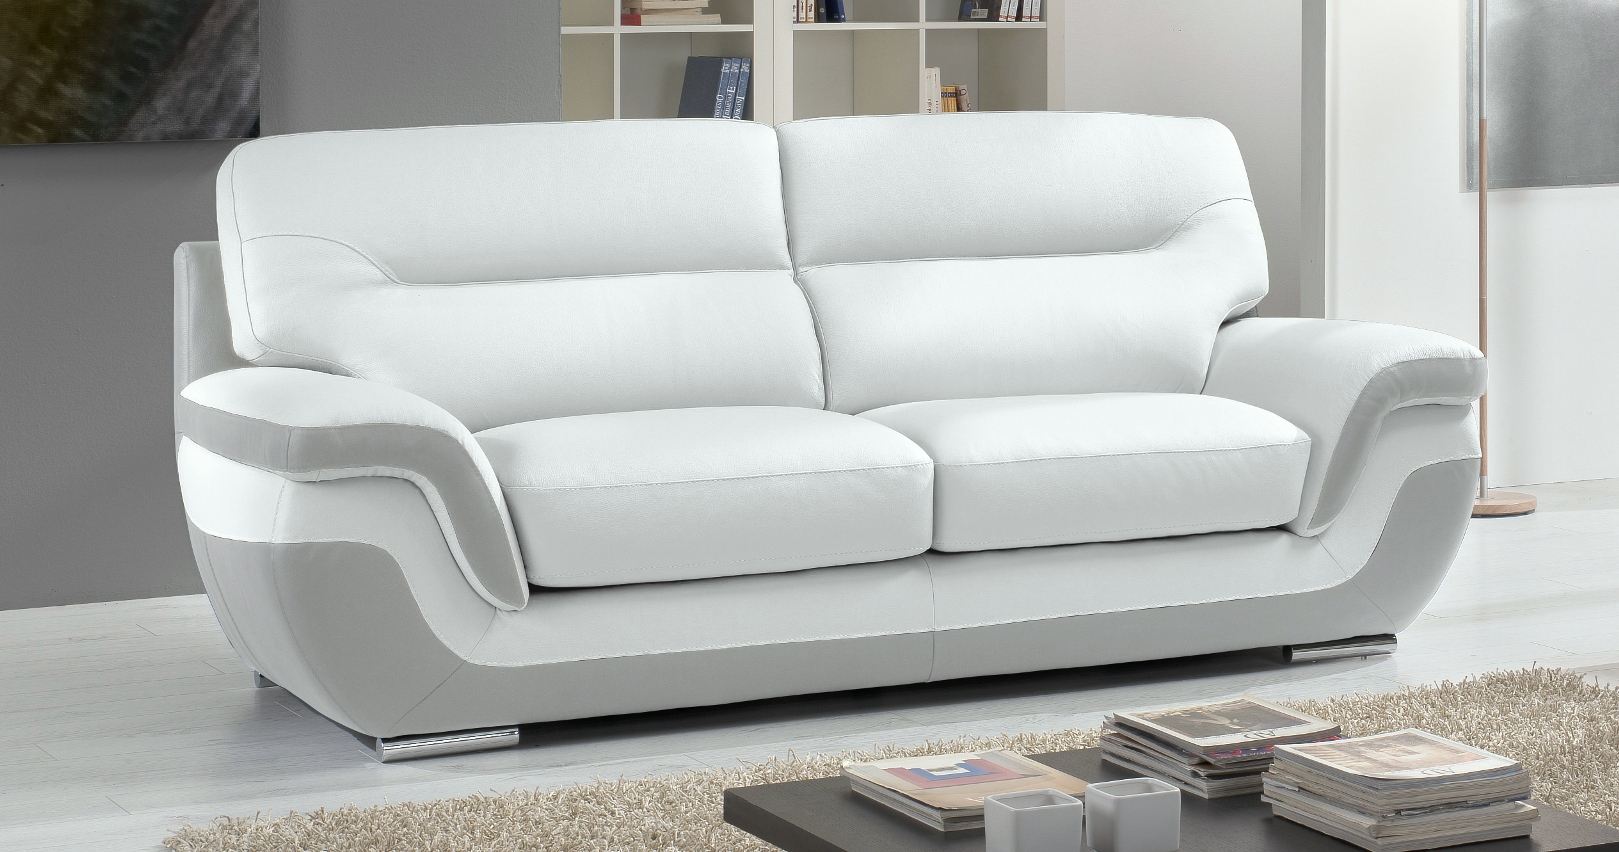 Moderne Couchgarnituren canapé cuir bicolore rodrigue 100 cuir